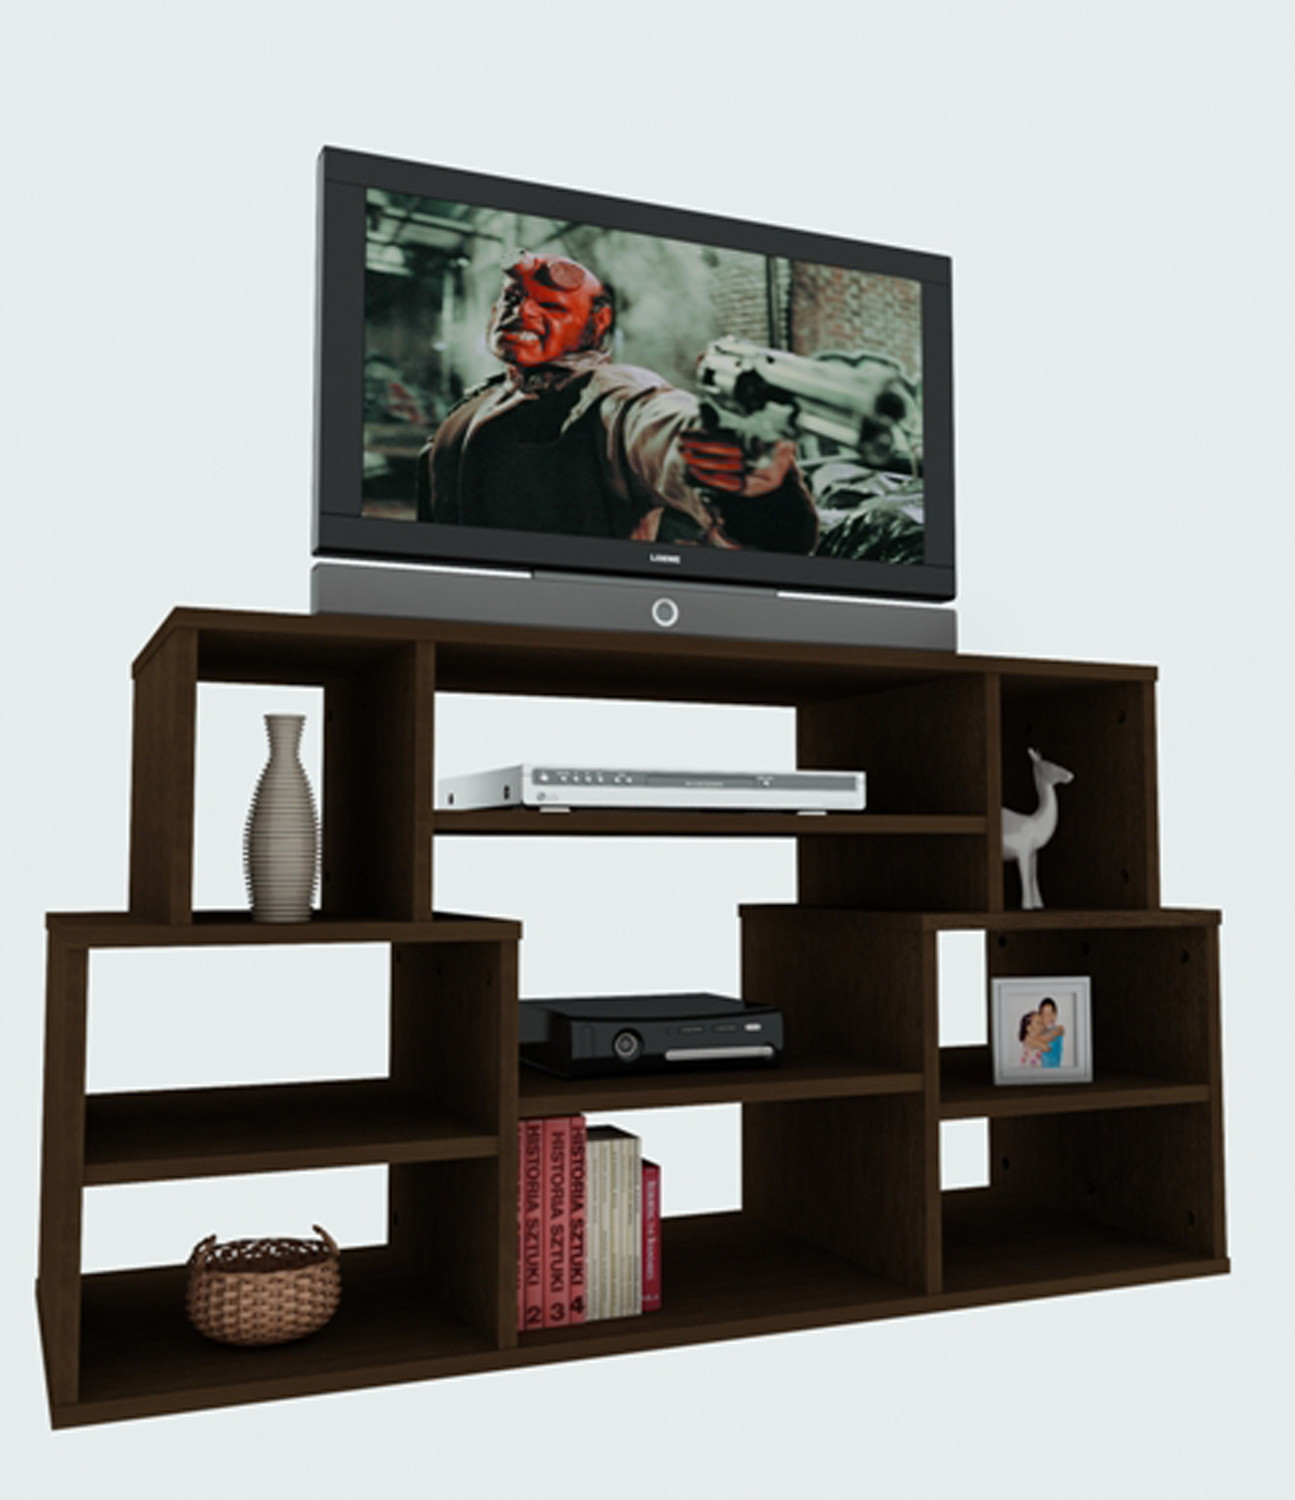 Muebles Para Tv Modernos Magnífico Tv 432 Sistemasrta Free Download Borrow and Of Muebles Para Tv Modernos Contemporáneo 1000 Ideas About Tv Rack On Pinterest